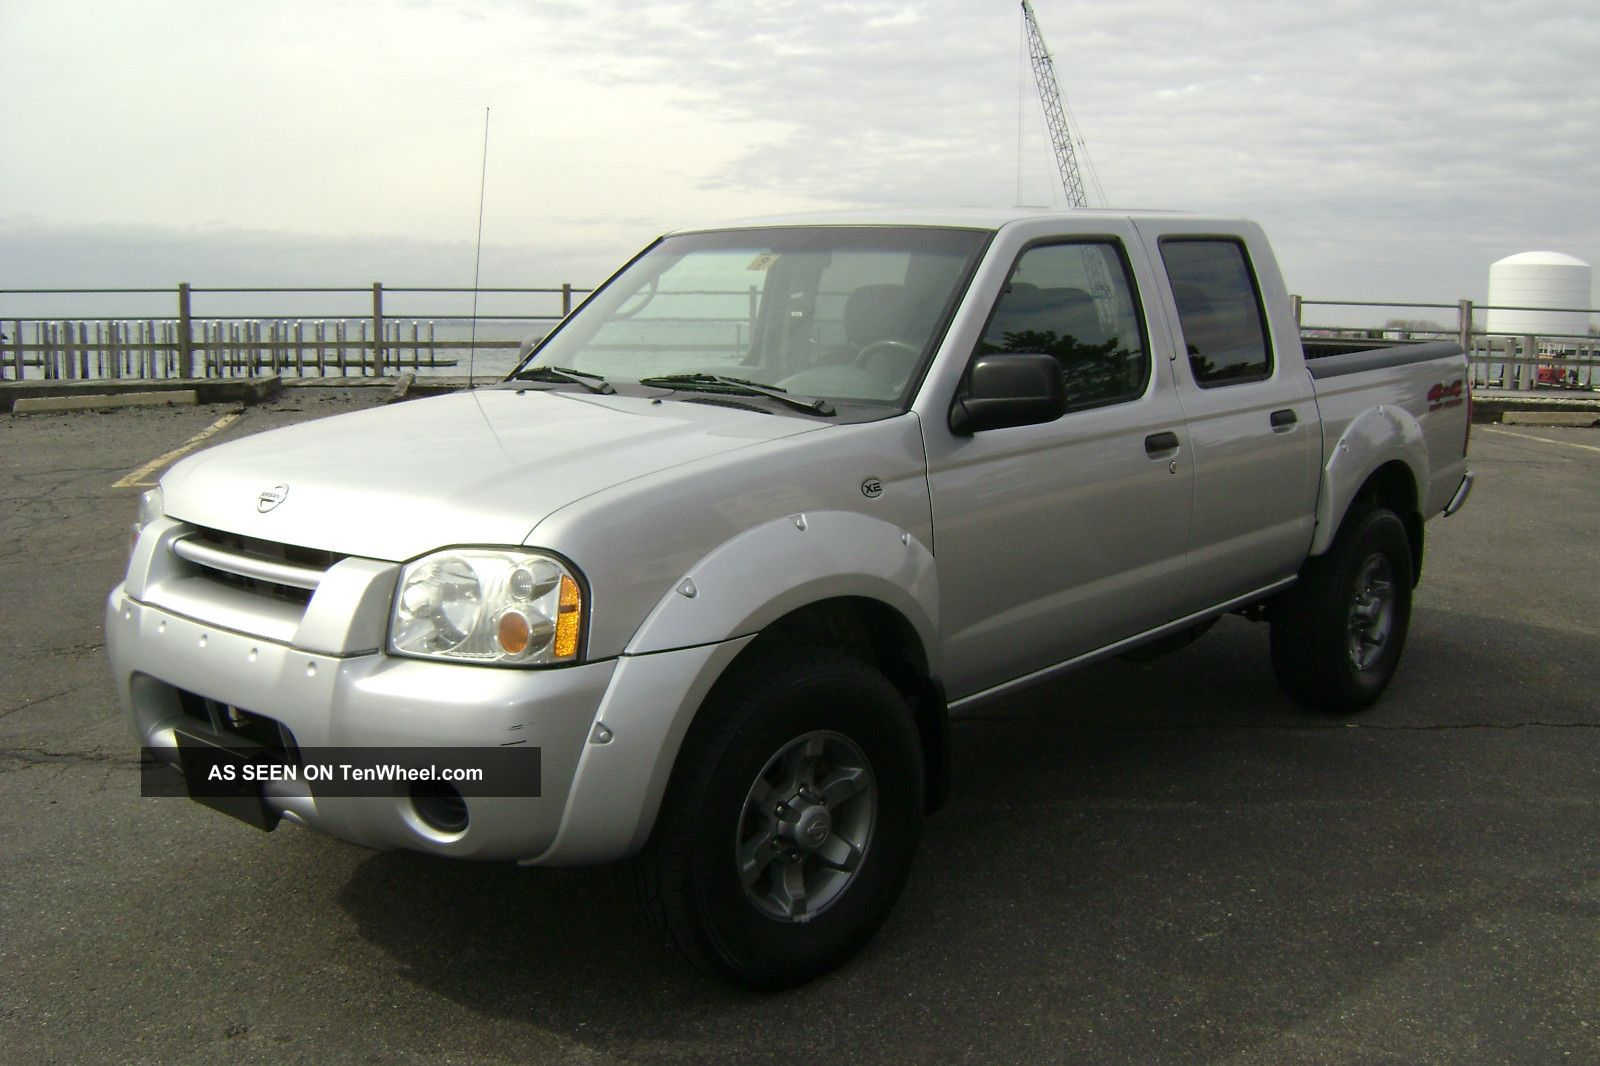 2004 nissan frontier xe crew cab pickup v6 auto 4x4 off road pkg. Black Bedroom Furniture Sets. Home Design Ideas